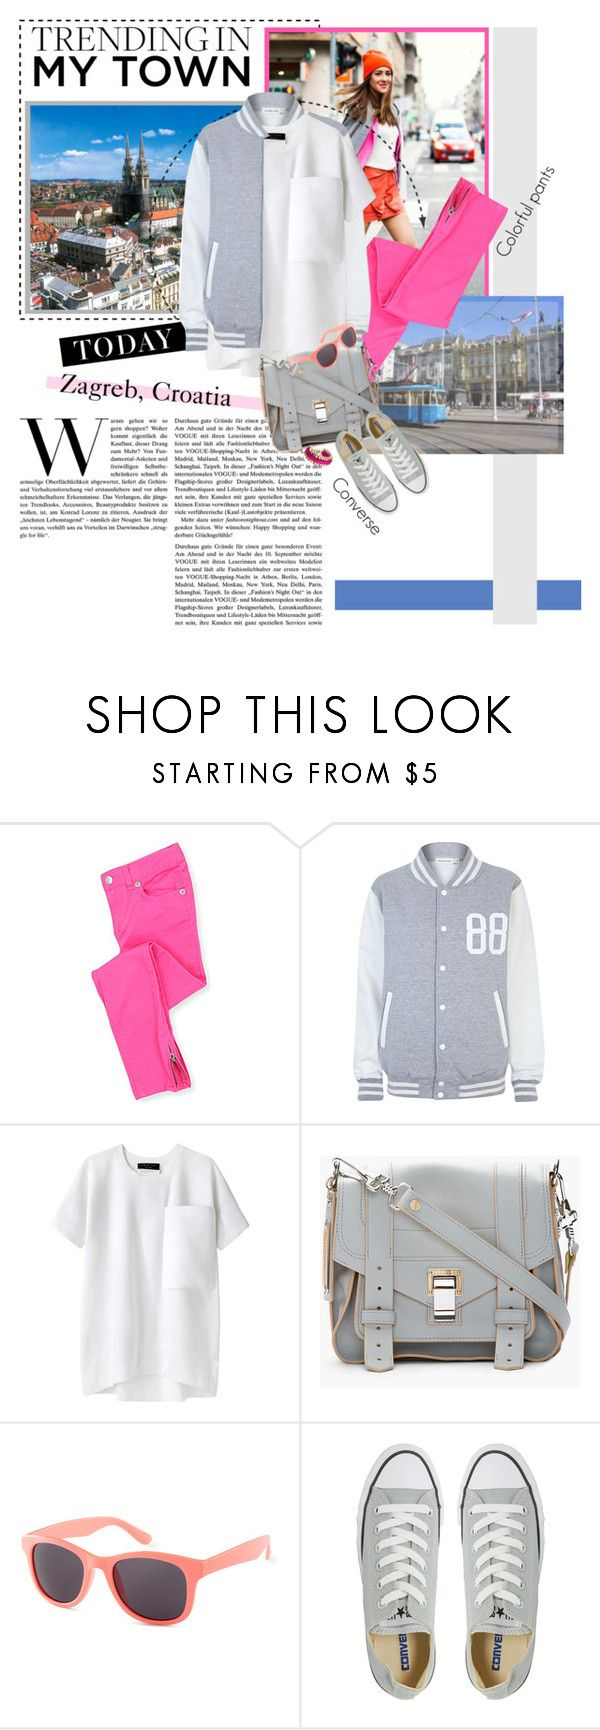 """""""Trending in my town: colorful pants & Converse sneakers"""" by minnie-me ❤ liked on Polyvore featuring Guide London, River Island, Levi's, rag & bone, Proenza Schouler, H&M, Converse, John & Pearl, varsity jackets and croatia"""